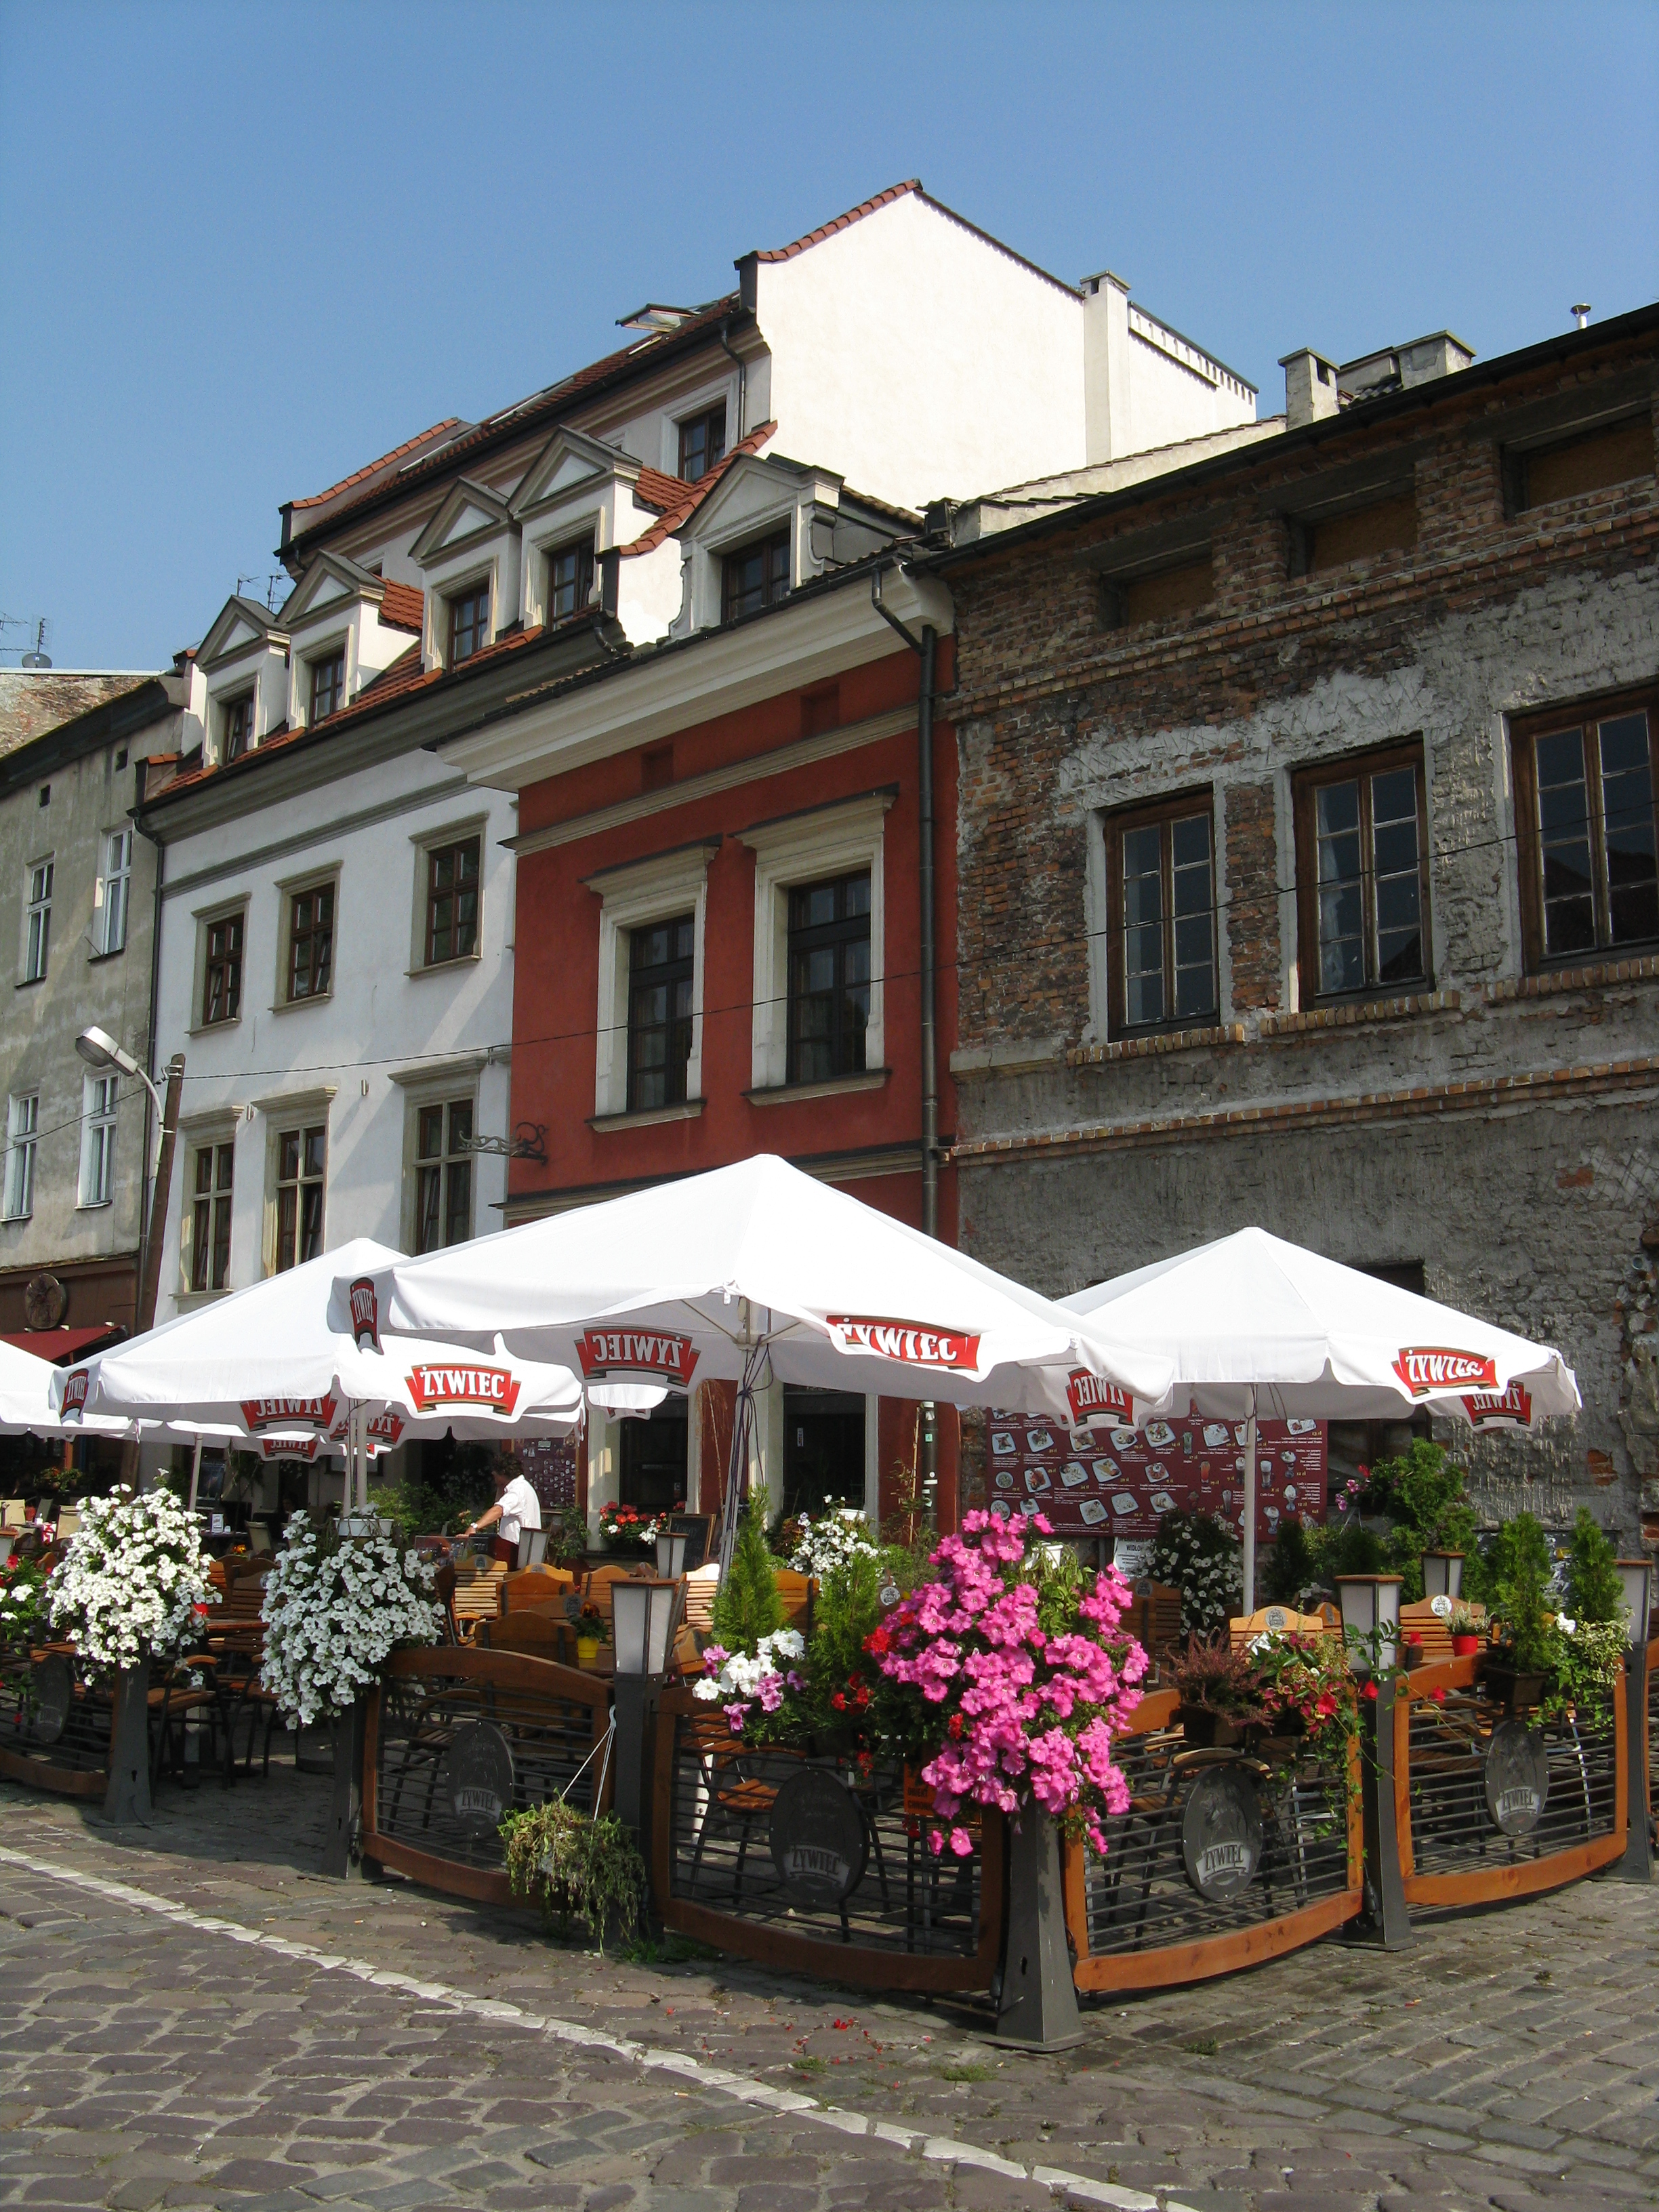 One of the cafes at the pretty square along Szeroka